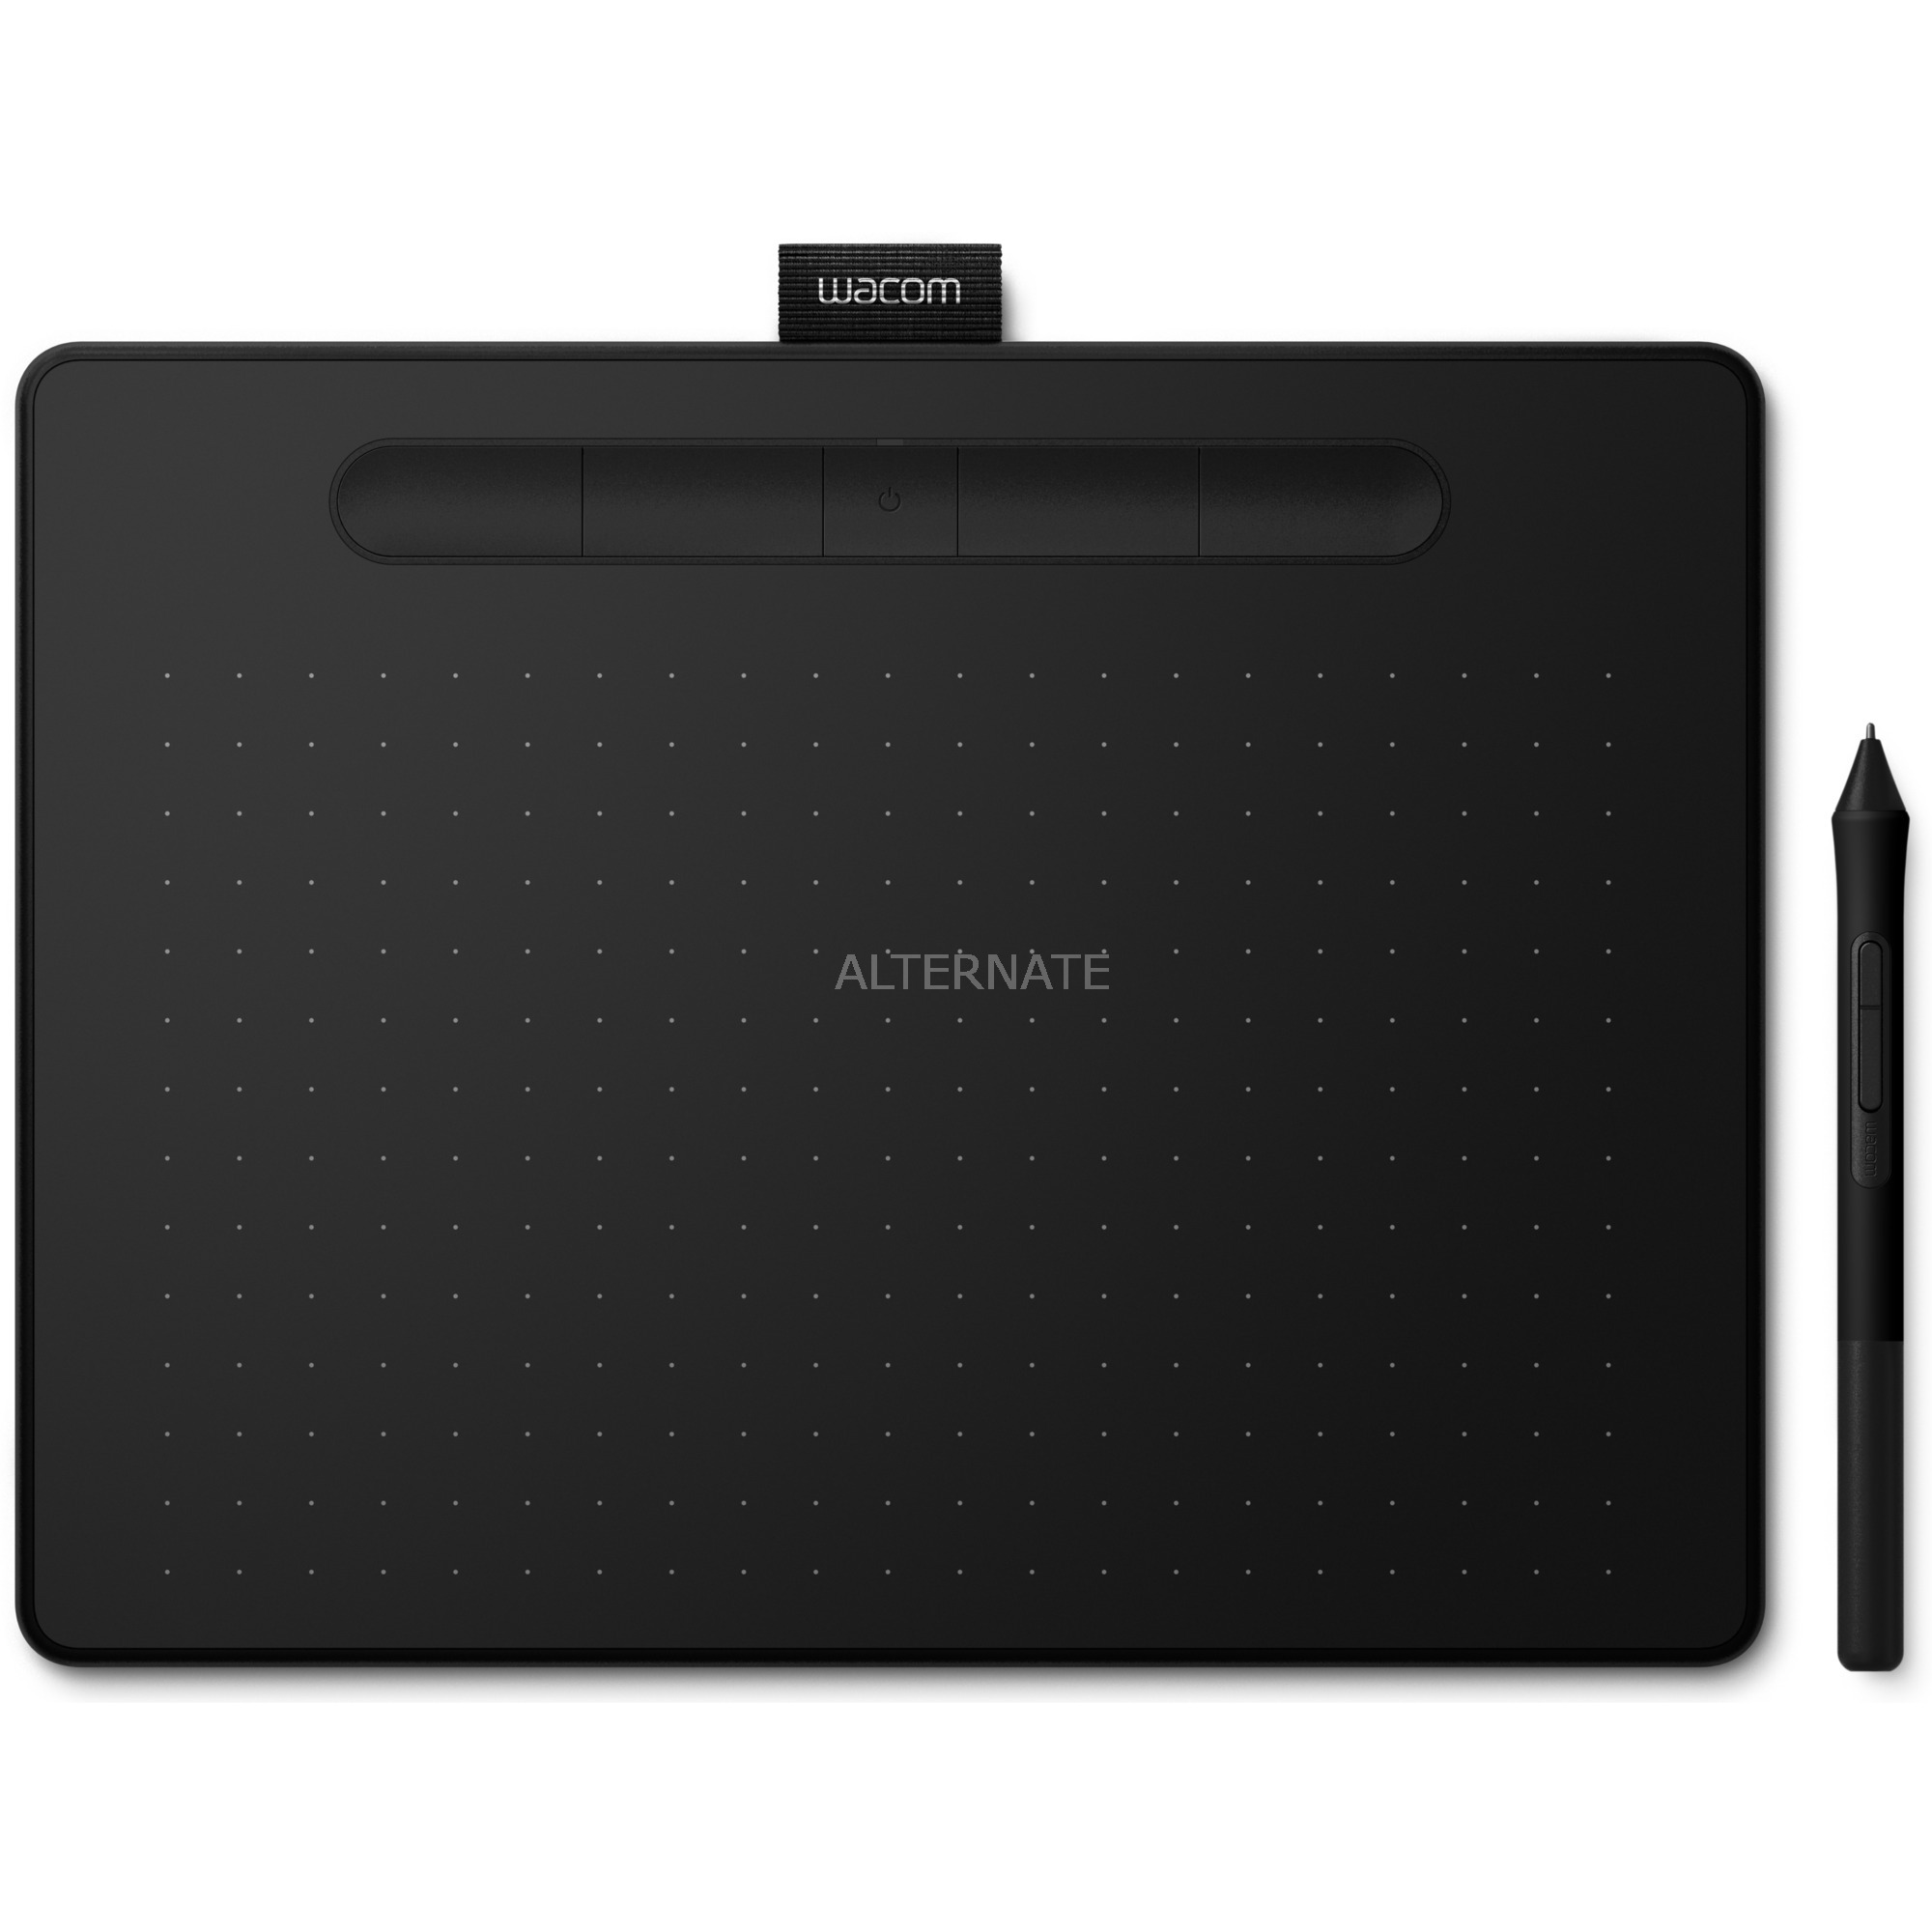 Intuos M Bluetooth tableta digitalizadora 2540 líneas por pulgada 216 x 135 mm USB/Bluetooth Negro, Tableta gráfica